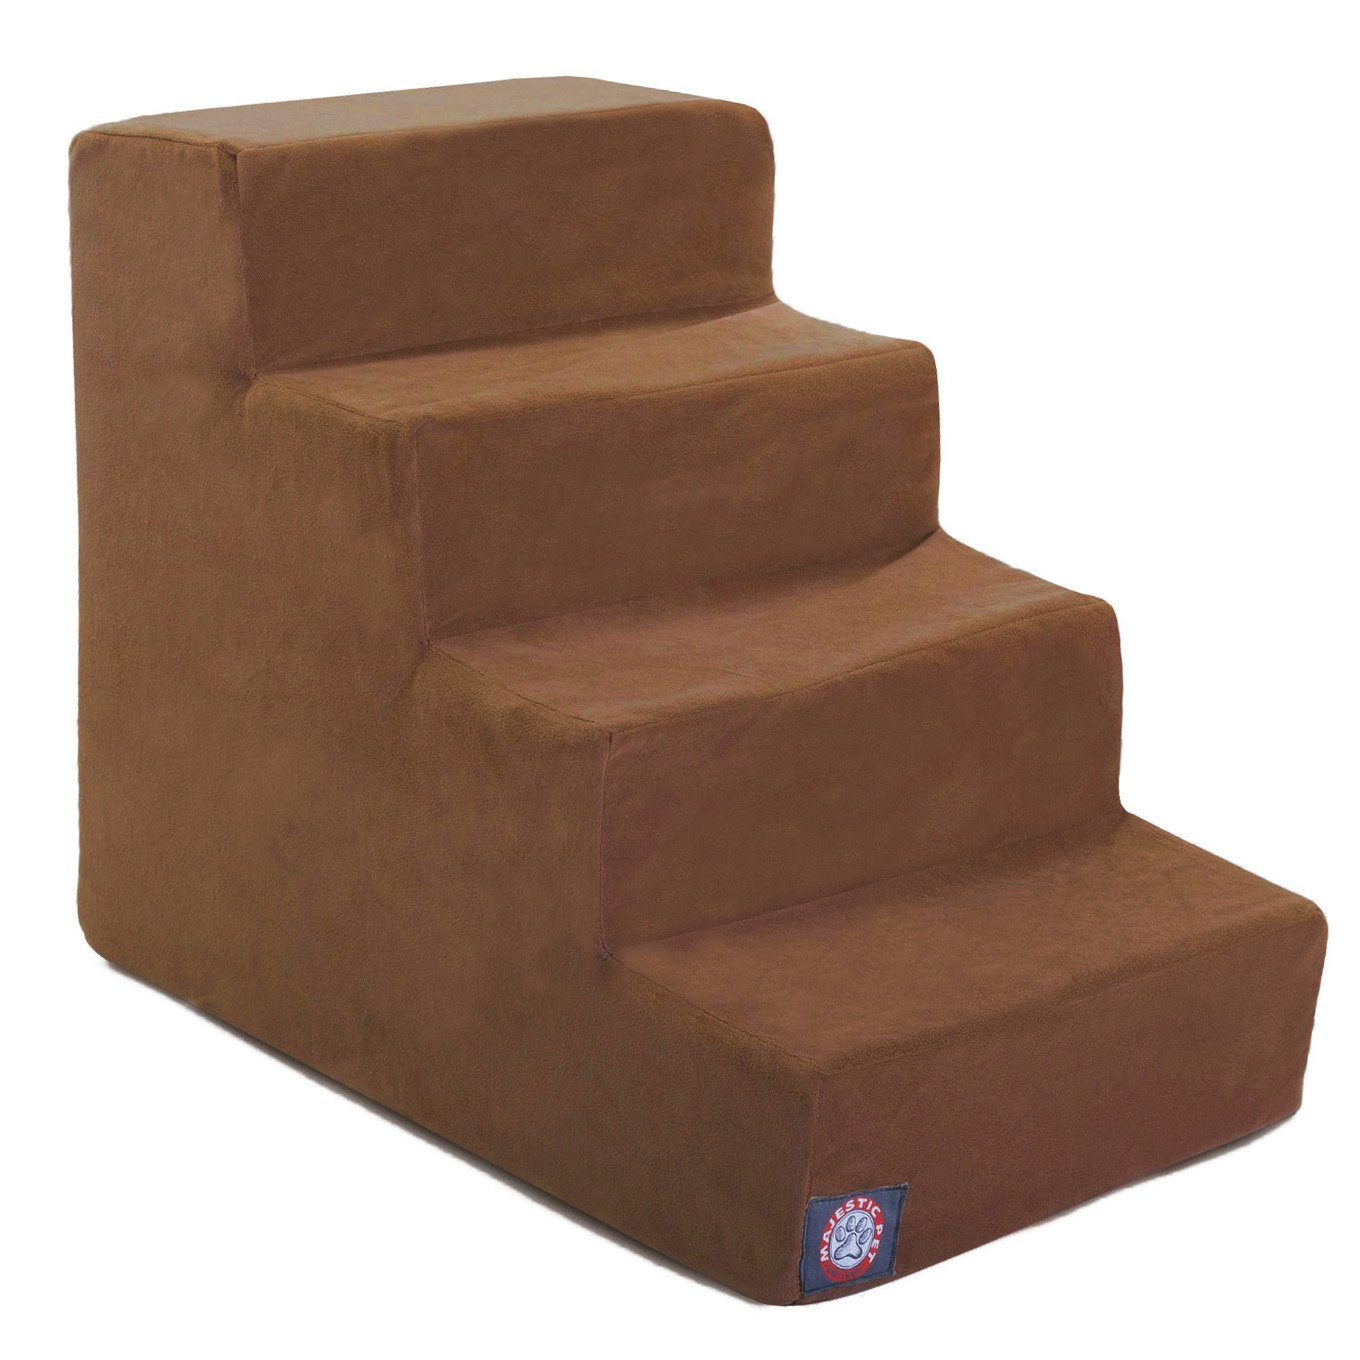 4 Step Rust Suede Pet Stairs By Majestic Pet Products